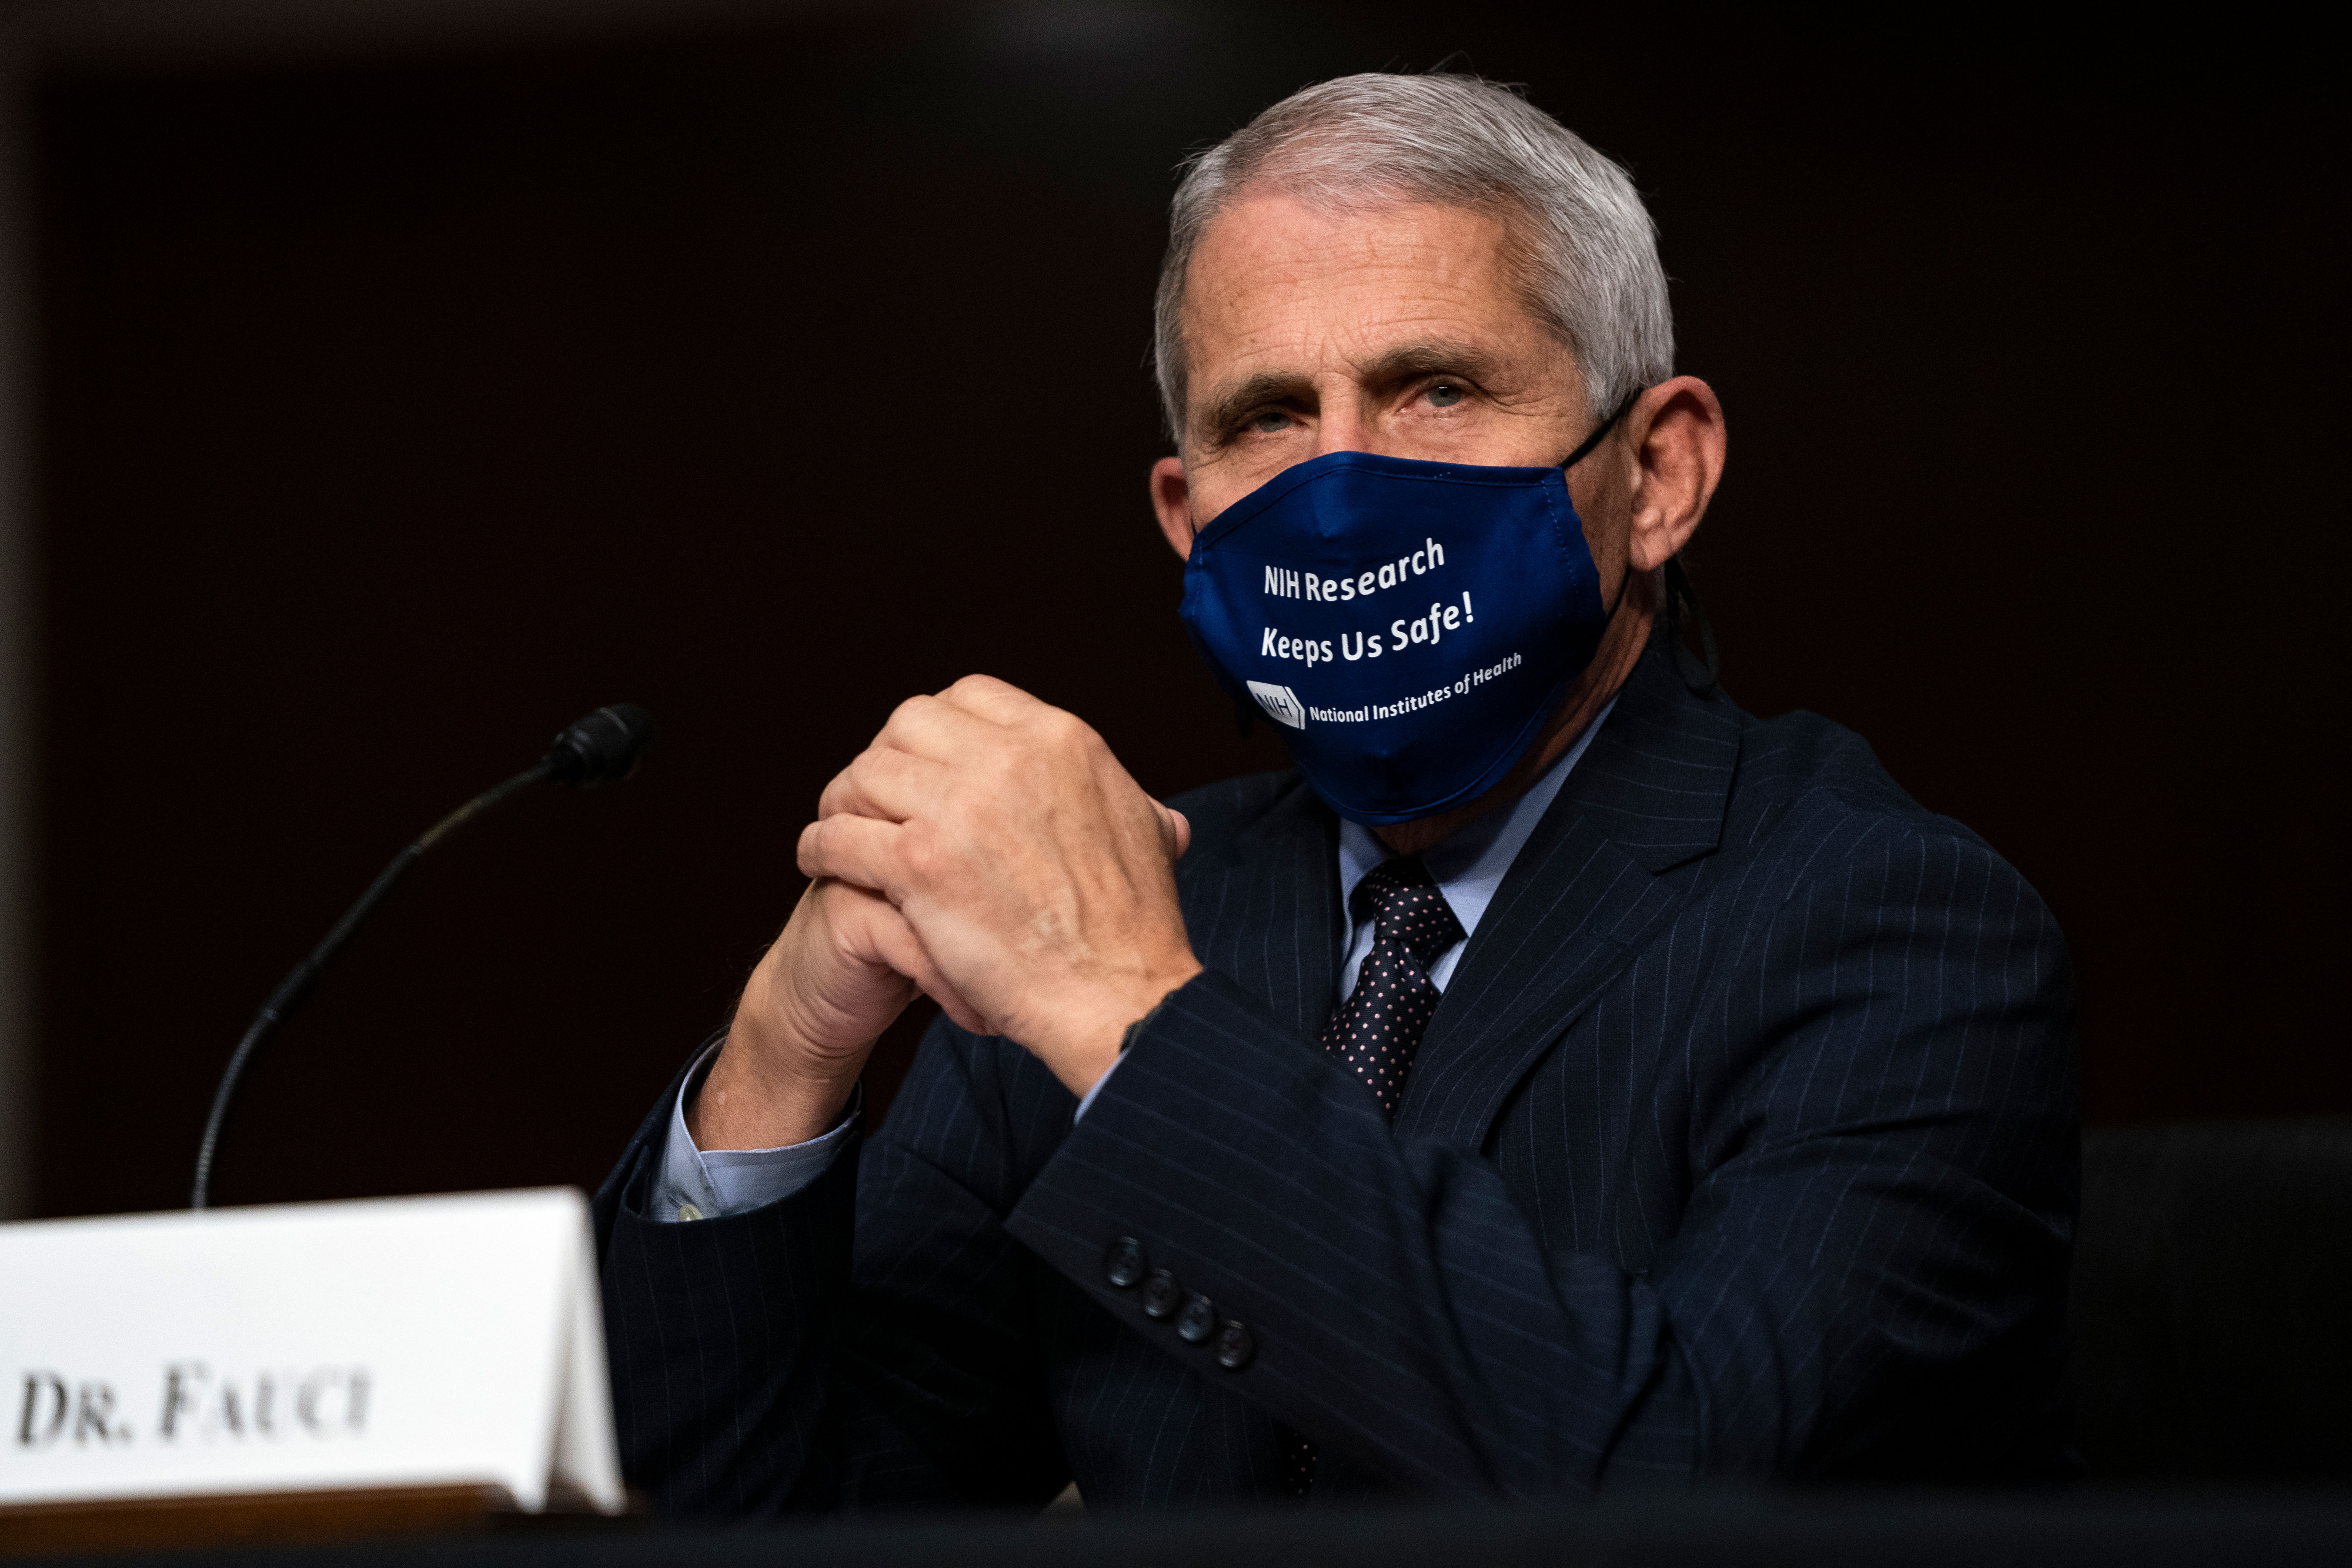 Dr. Anthony Fauci testifies at a hearing on September 23 in Washington, DC.